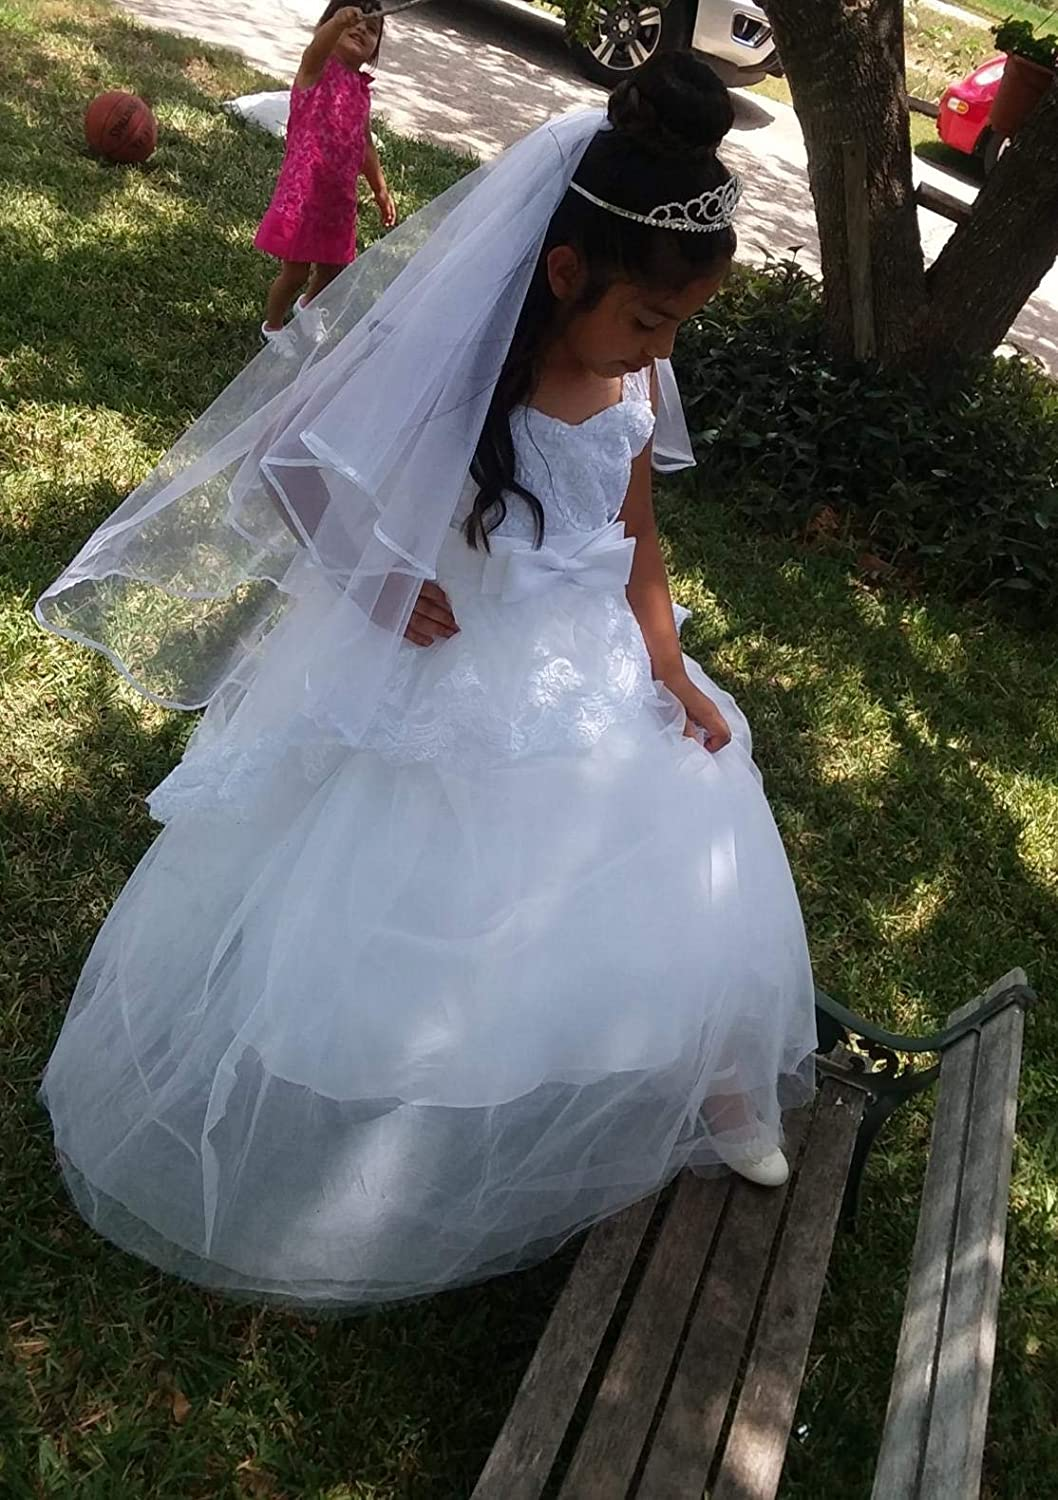 Elegant Lace Appliques Cap Sleeves Tulle Flower Girl Dress 1-14 Years Old